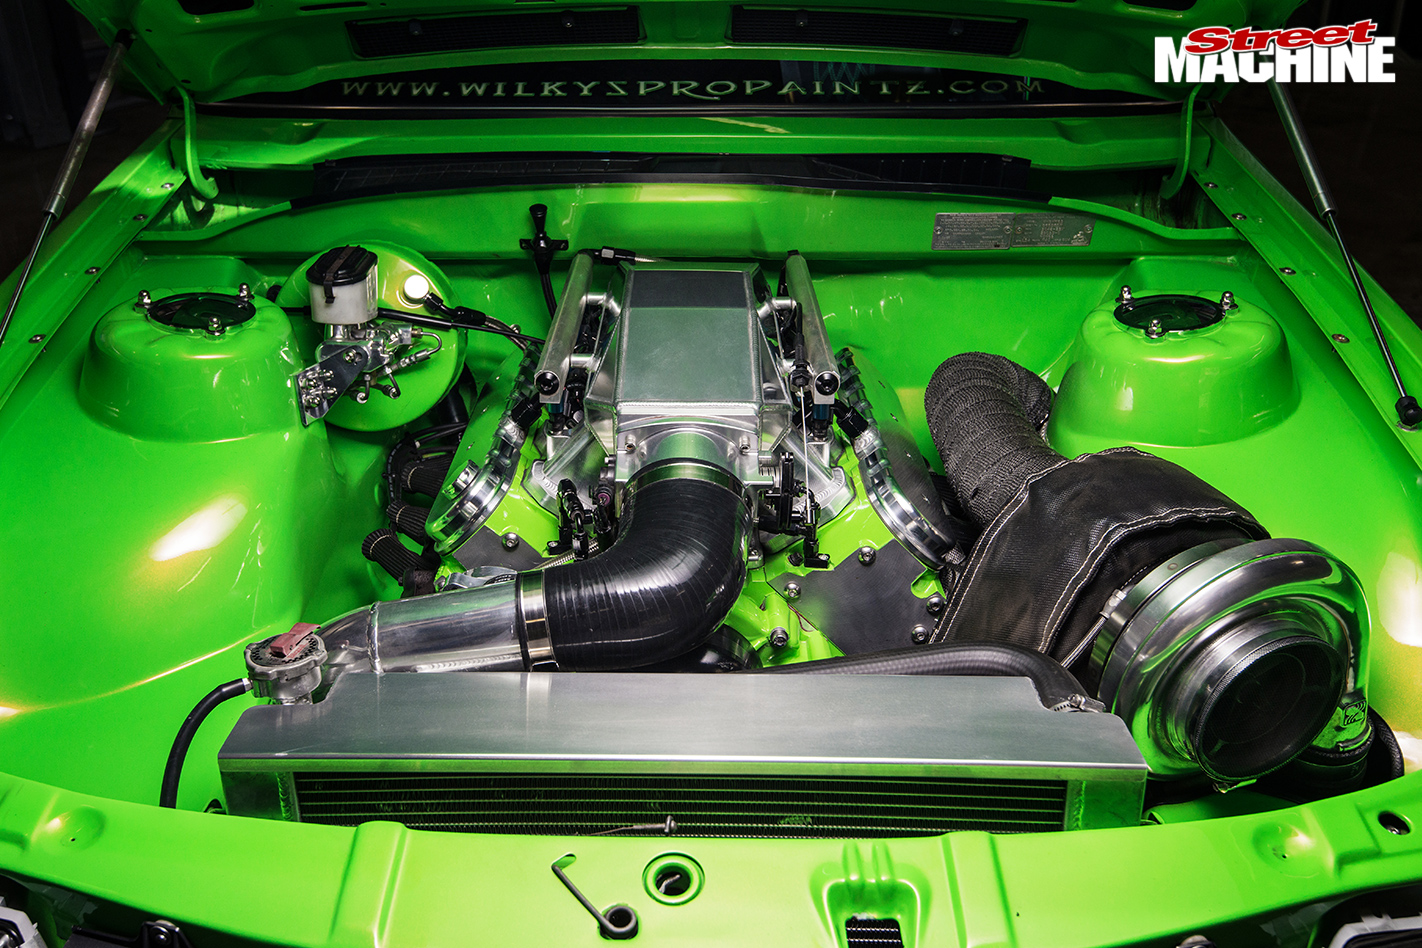 202-POWERED-1983-HOLDEN-VH-COMMODORE-engine